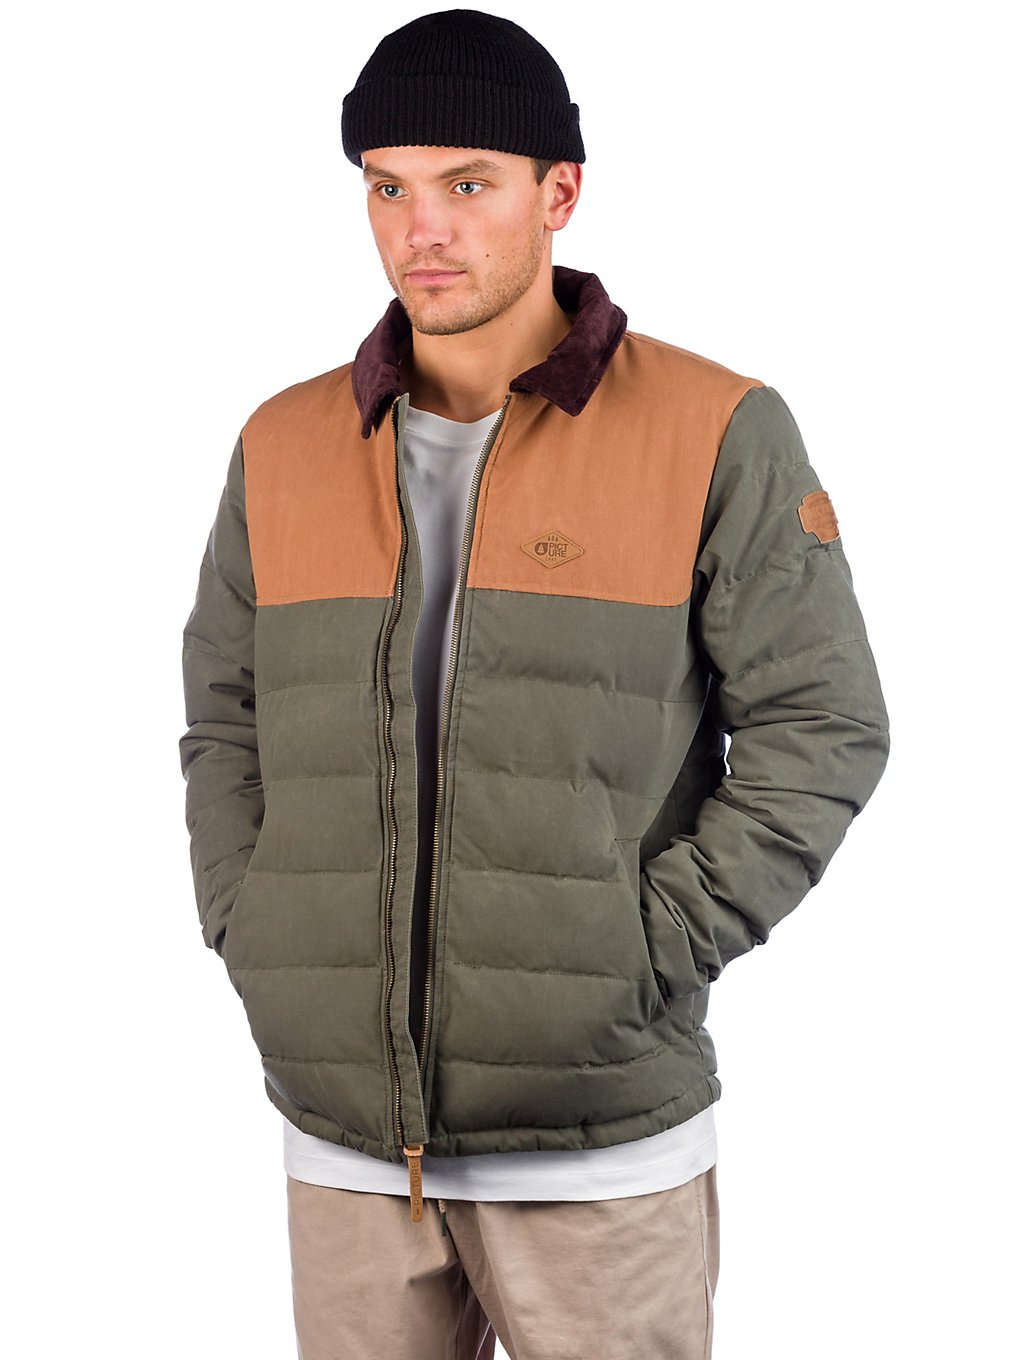 Picture Mc Murray Jacket a dark green